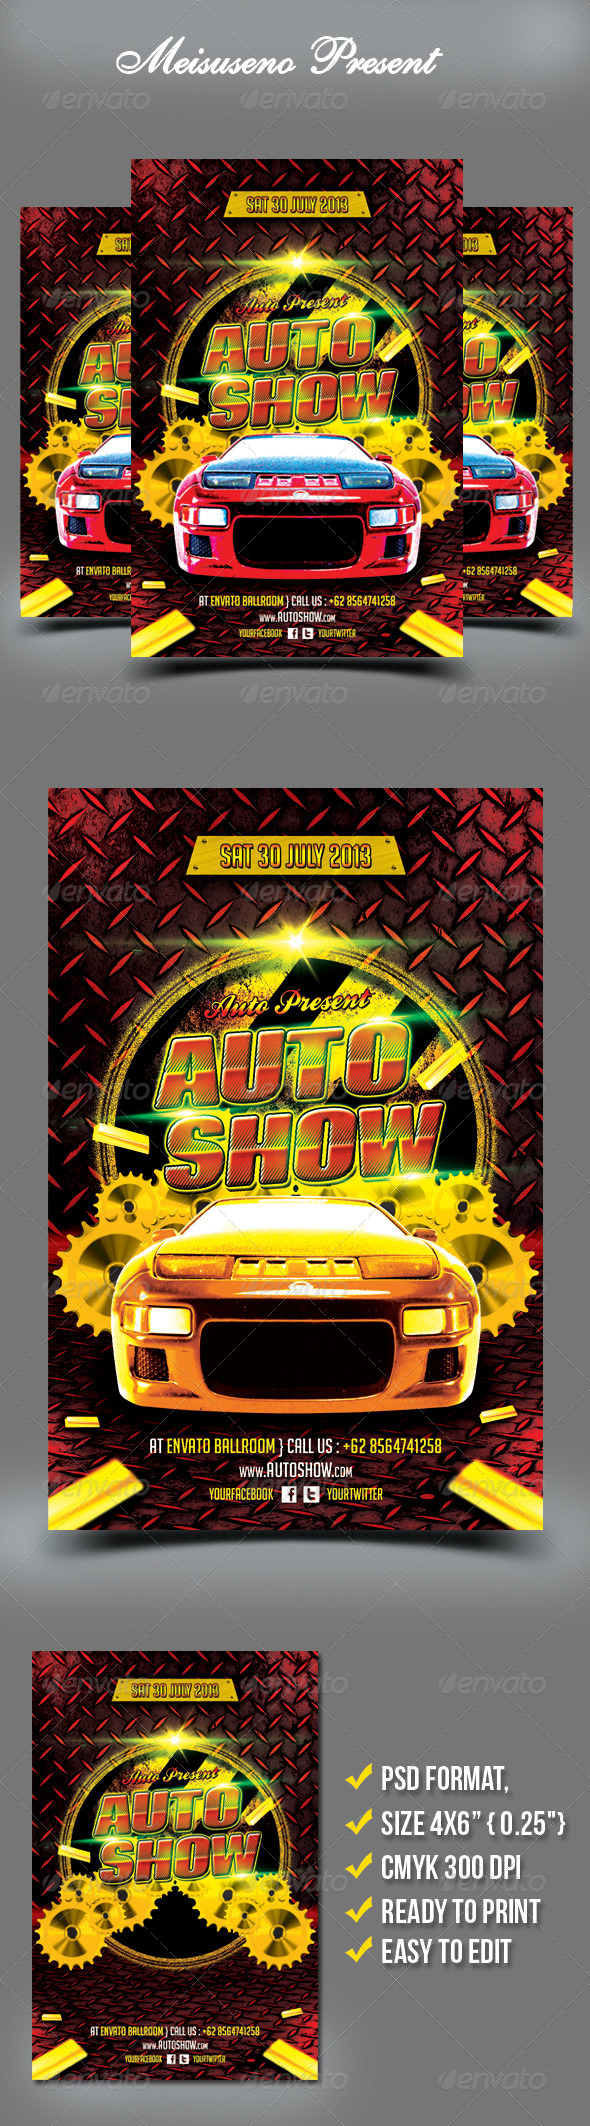 Auto Show Flyer - Miscellaneous Events